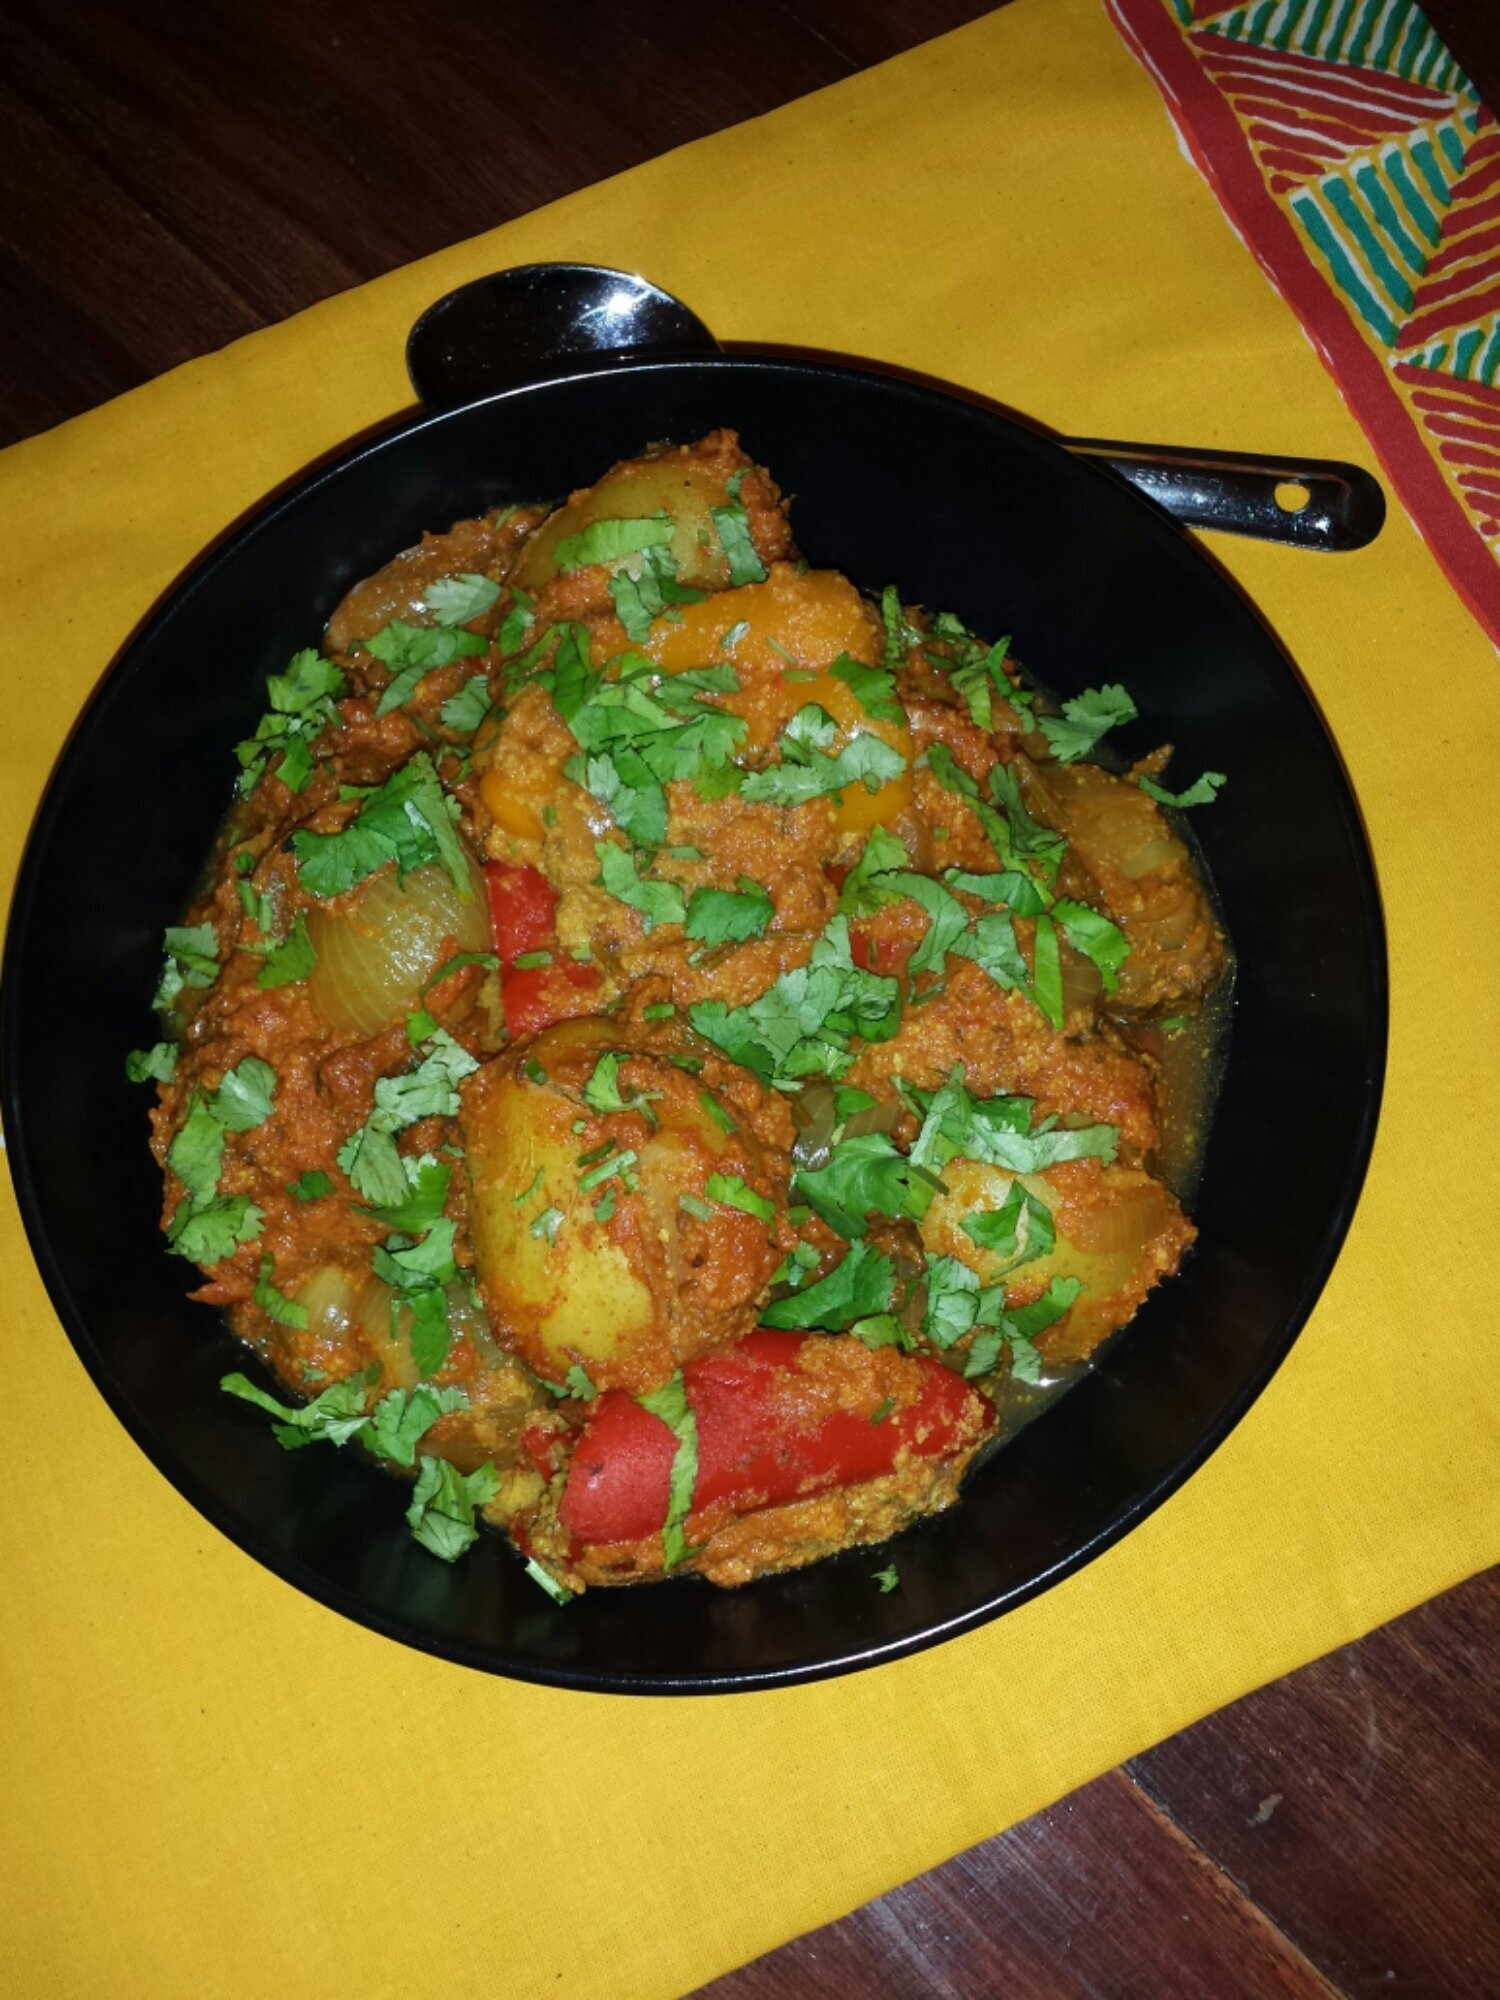 Roasted Spice and Coconut Flour Stuffed Vegetable Curry